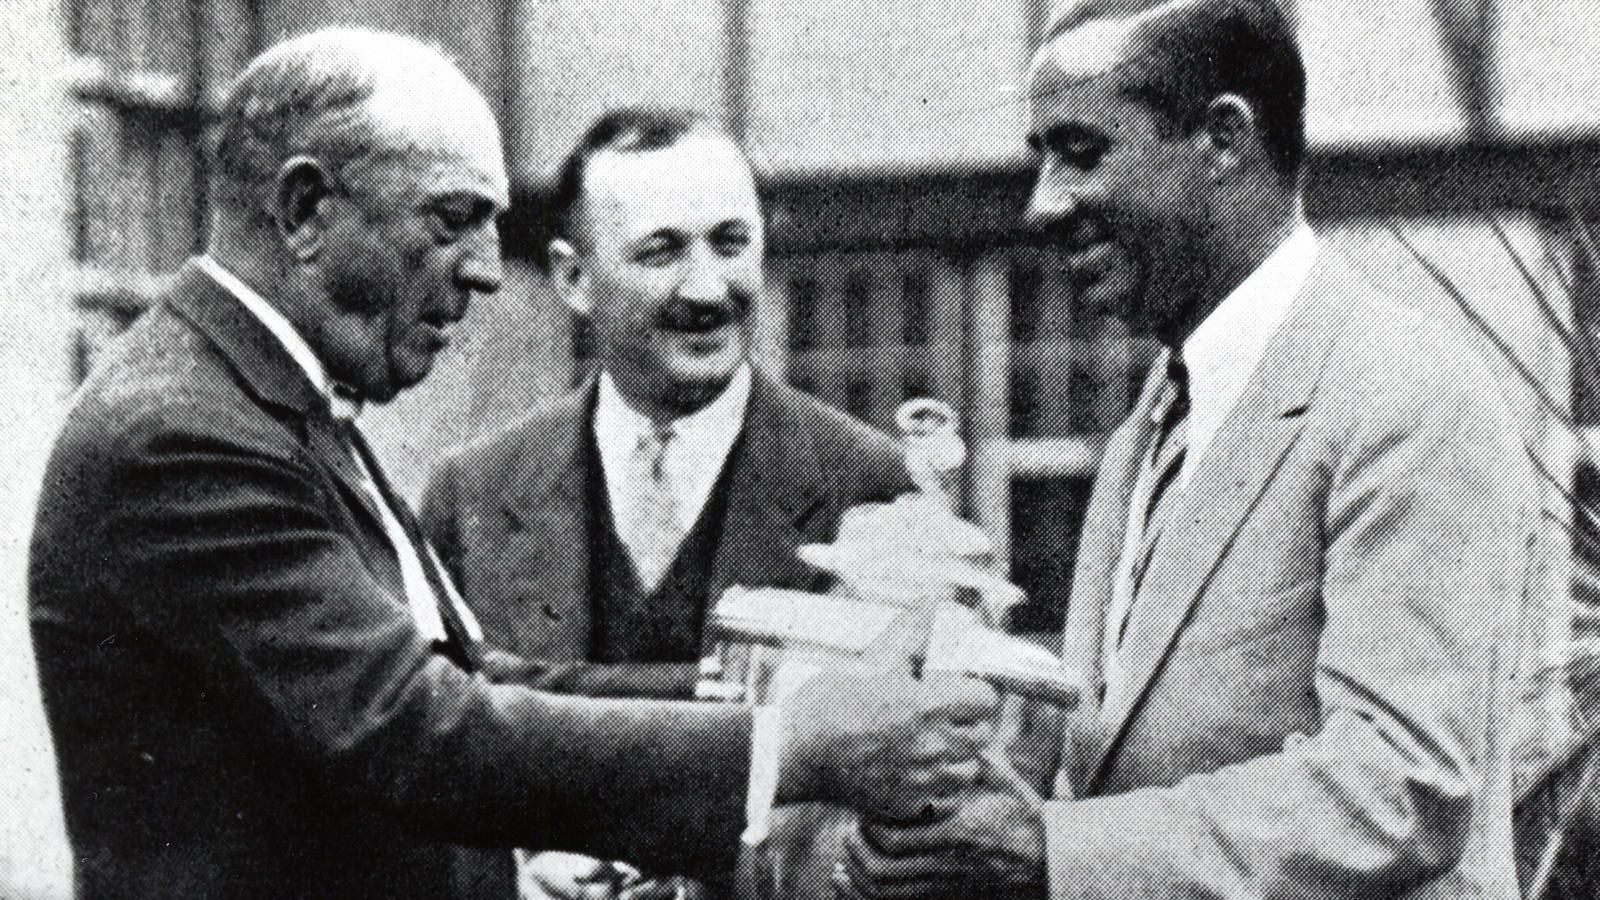 September 26, 1925 - Walter Hagen receives back the Wanamaker Trophy from Olympia Fields President Charles Smalley as Vice President Albert M. Saxe looks on.